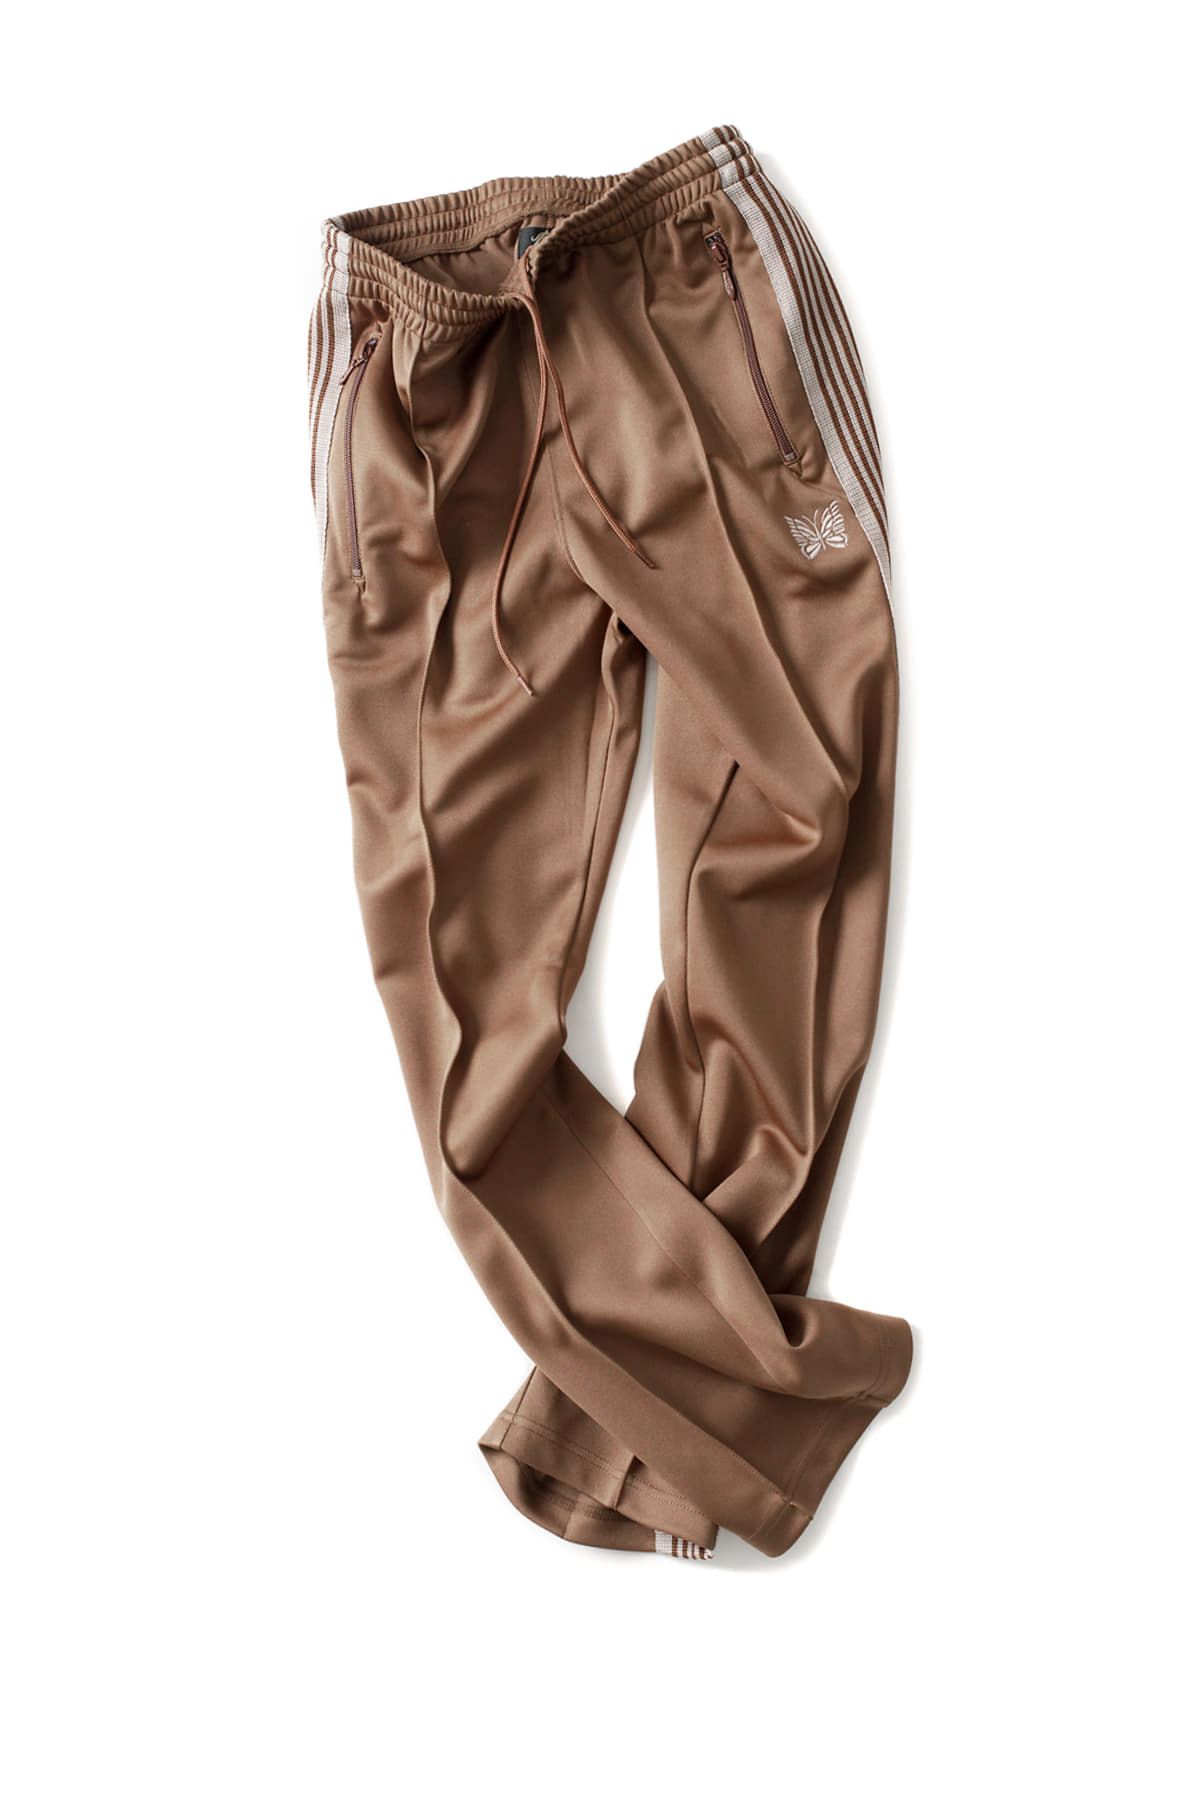 NEEDLES : Narrow Track Pant (Brown)